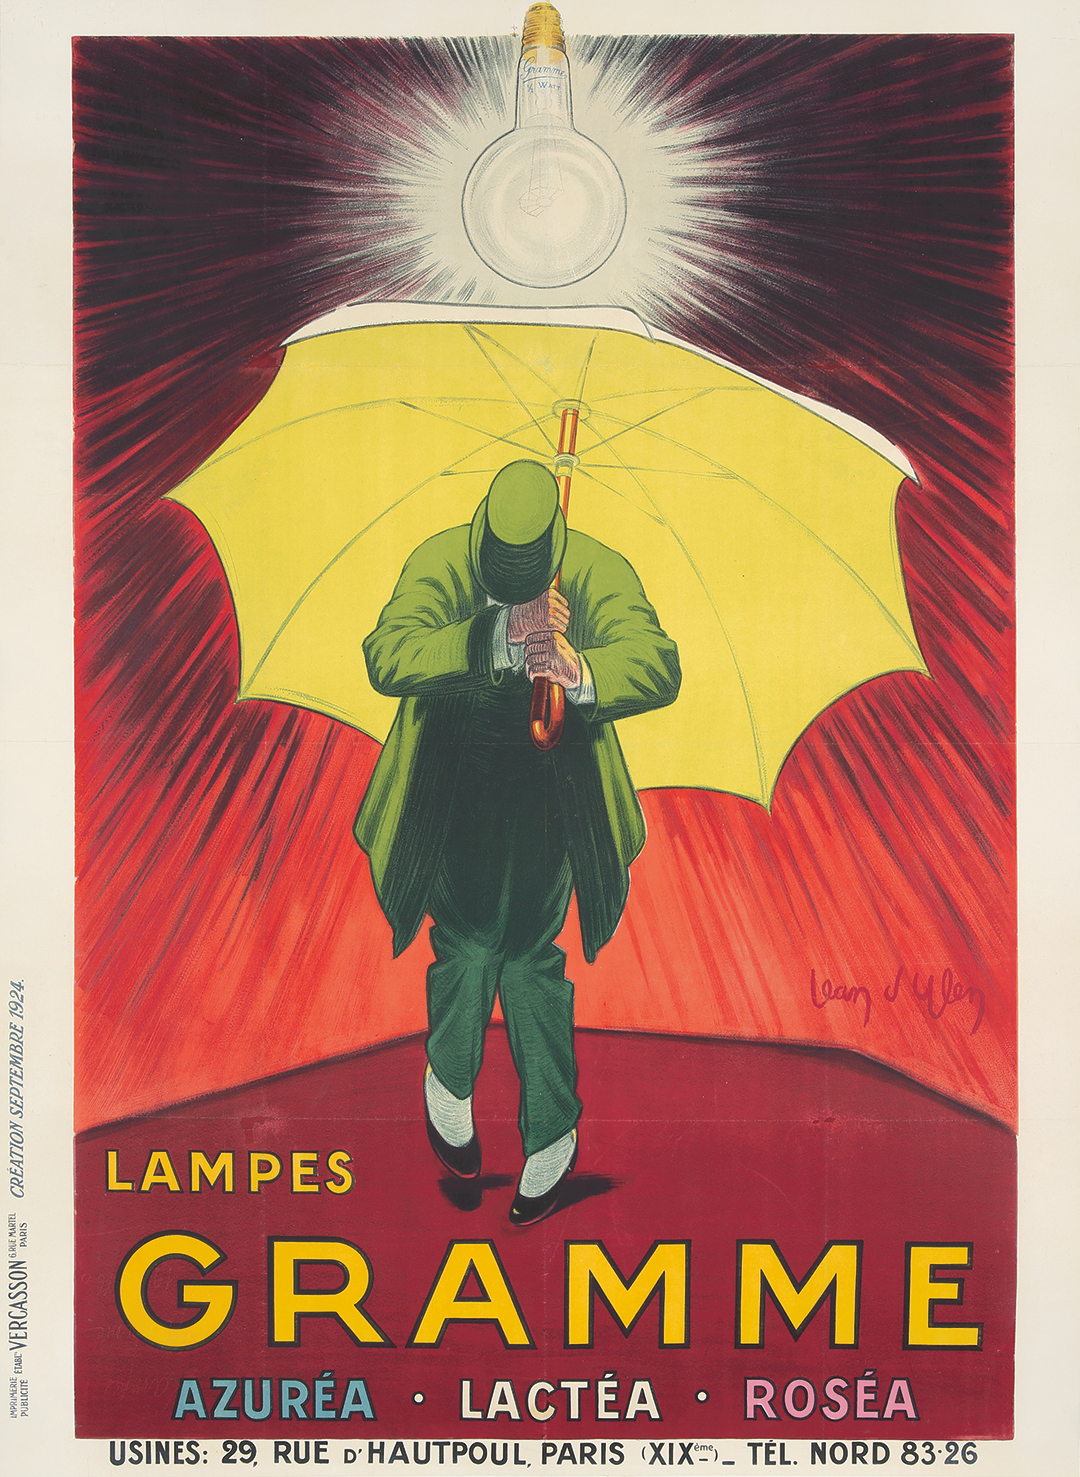 457. Lampes Gramme. 1924.